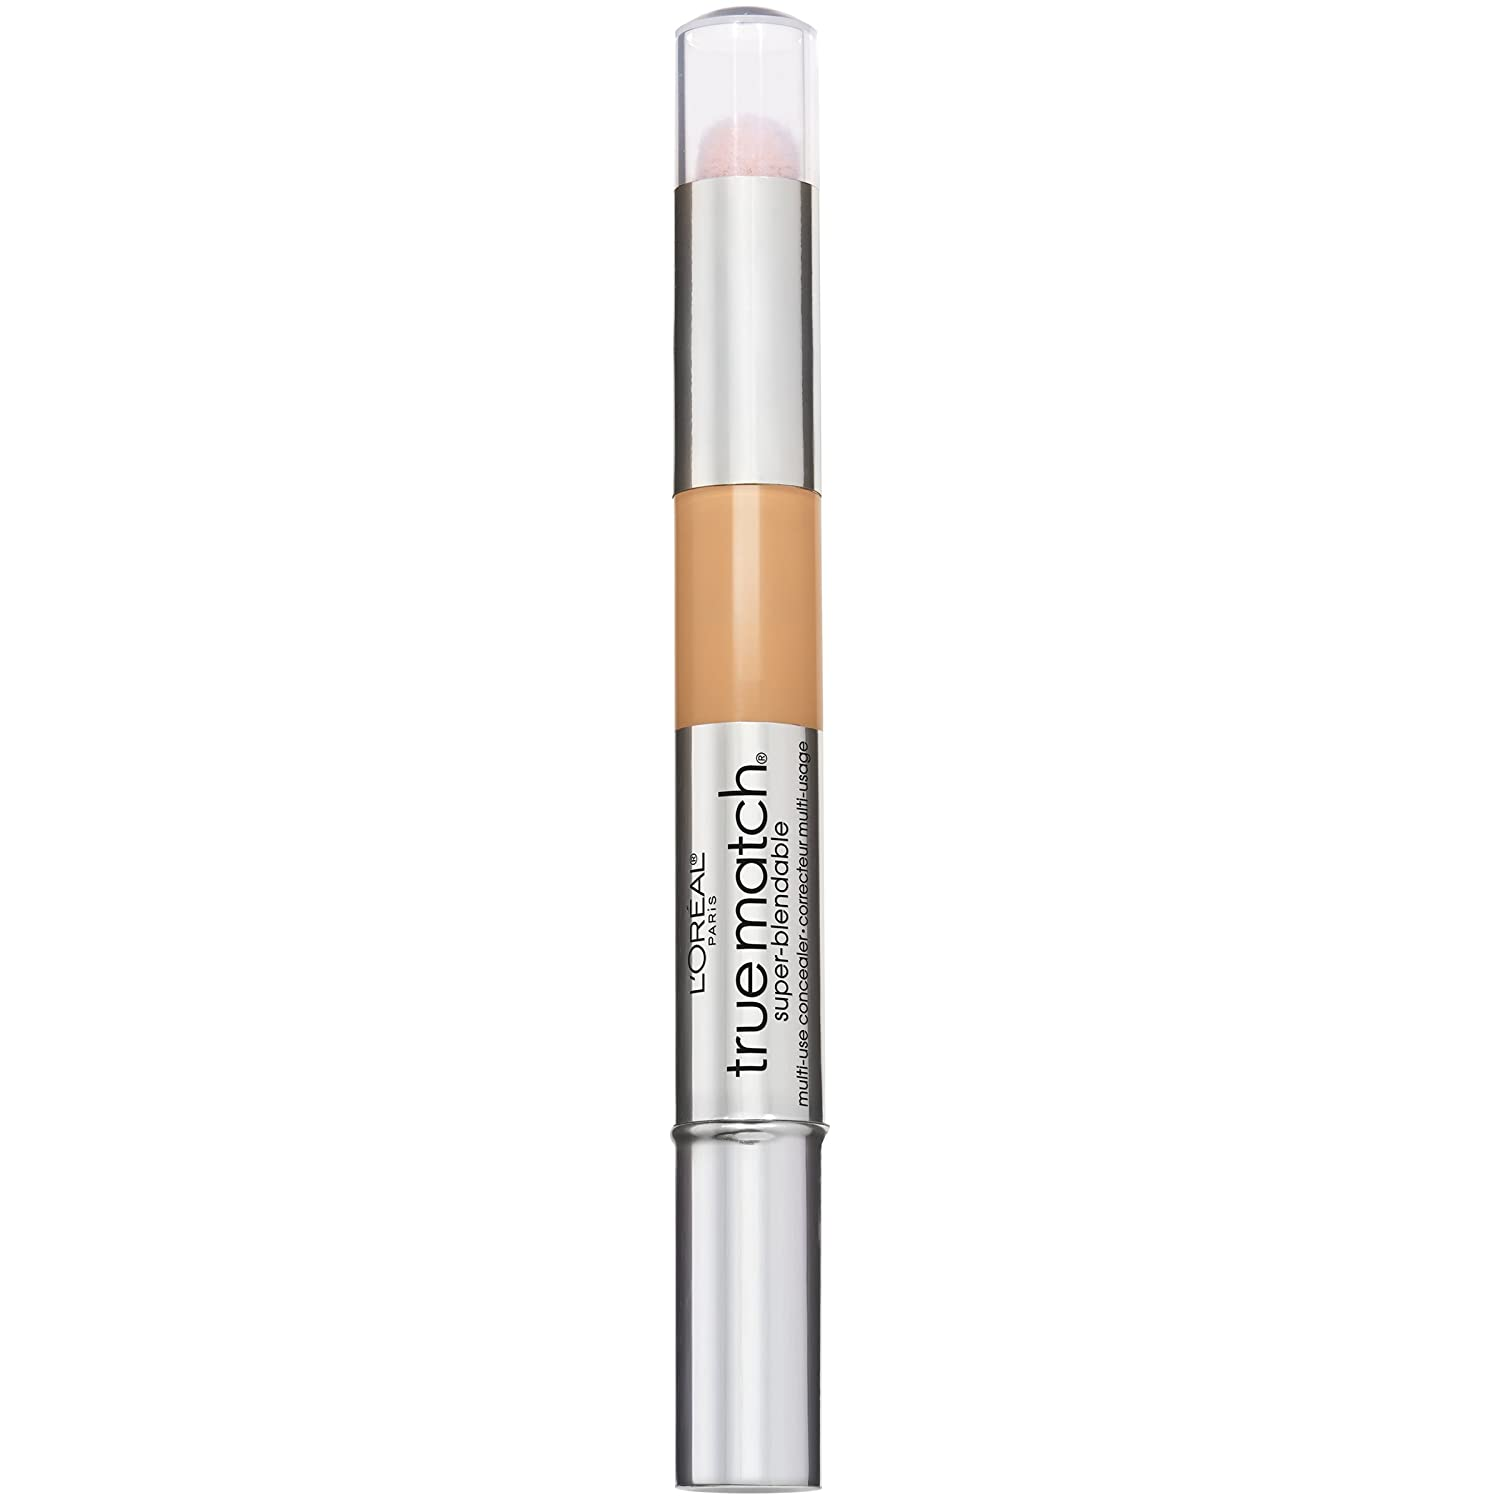 L'Oreal Paris Cosmetics True Match Super-Blendable Multi-Use Concealer Makeup, Fair C1-2, 0.05 Fluid Ounce L' Oreal - Cosmetics 071249362198